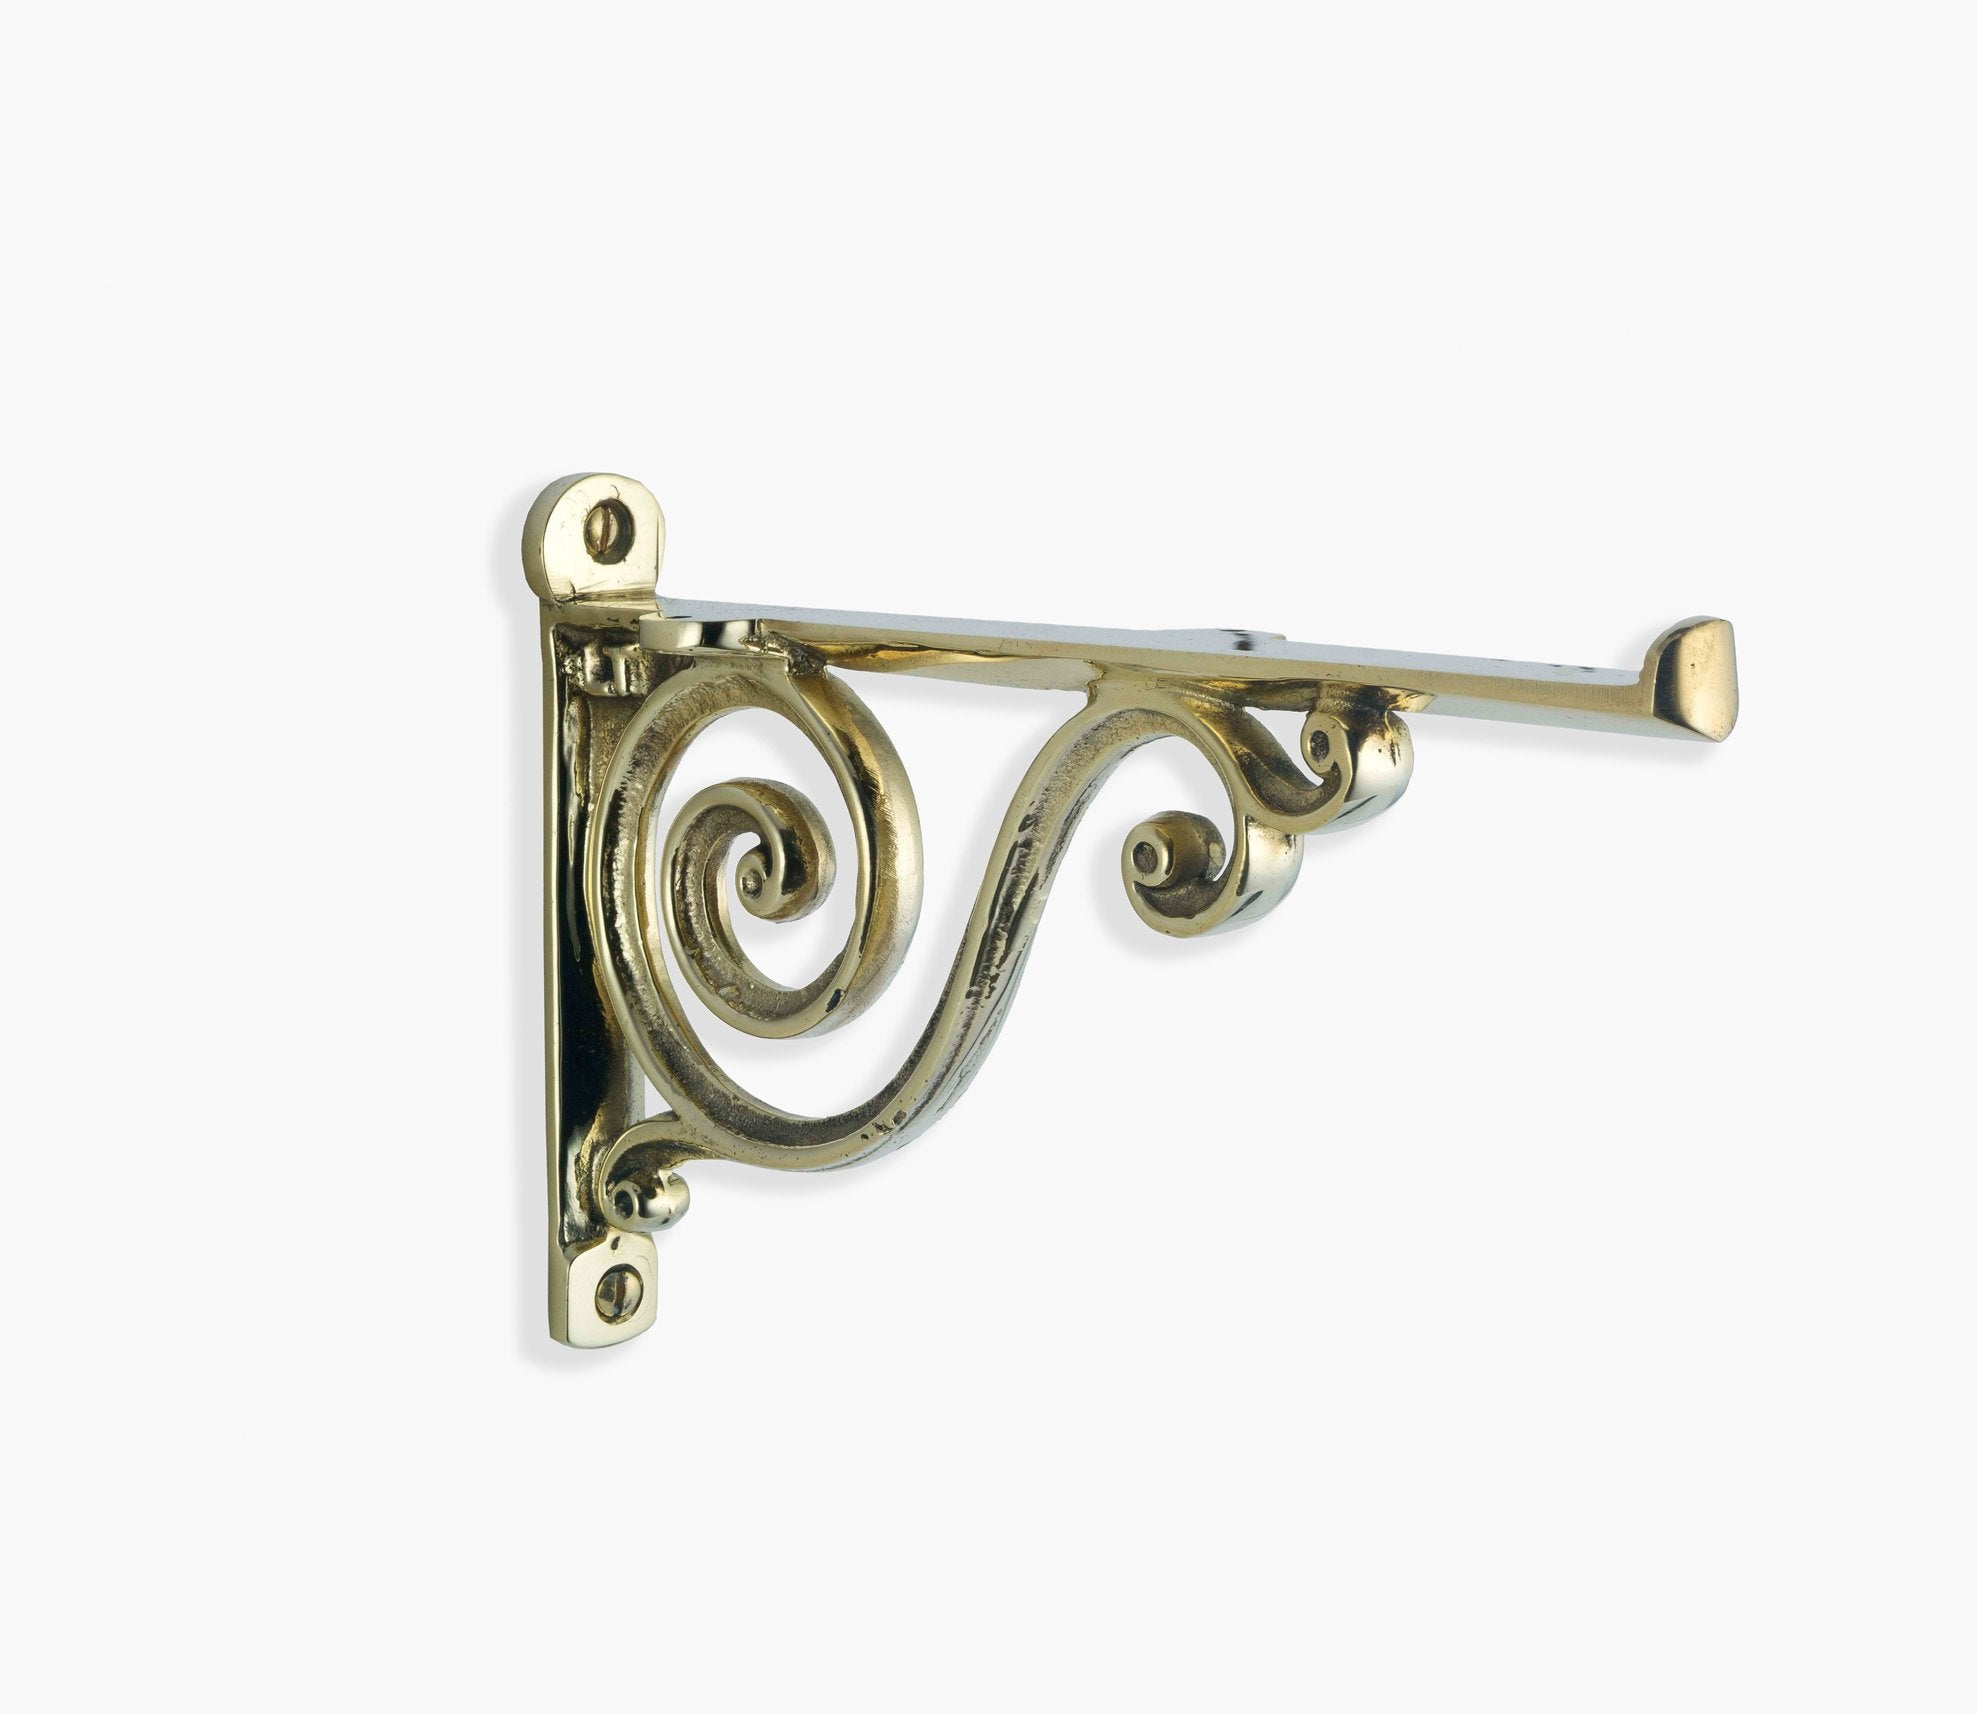 Shelf Bracket 101 Product Image 1